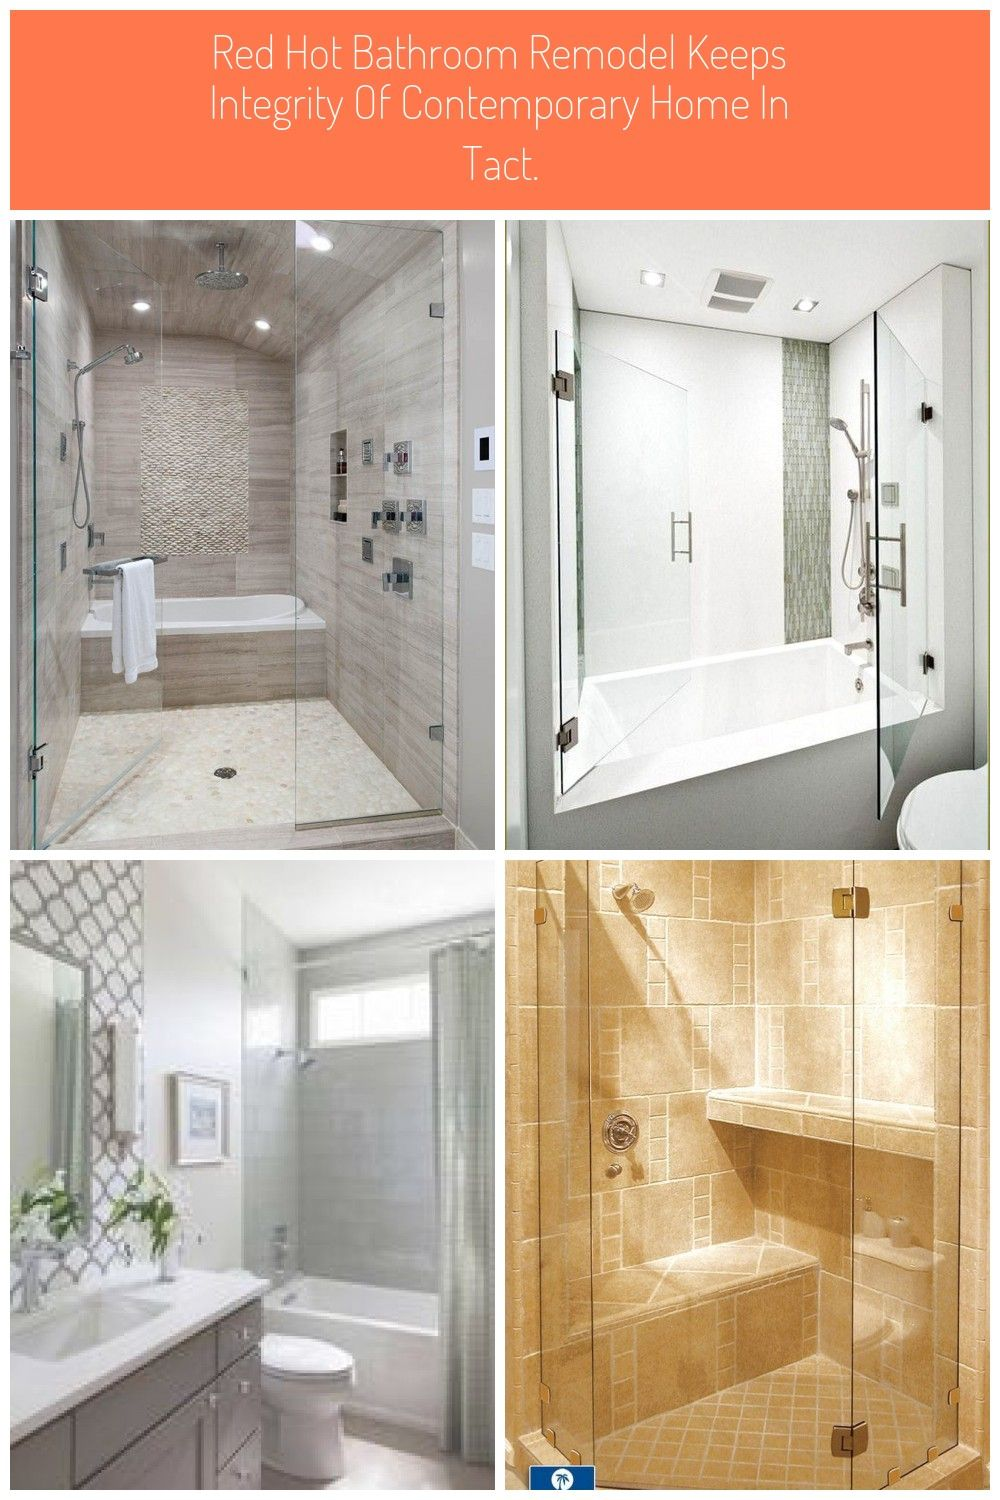 Red Hot Bathroom Remodel Keeps Integrity Of Contemporary Home In Tact In 2020 Badewanne Mit Dusche Badewanne Badezimmer